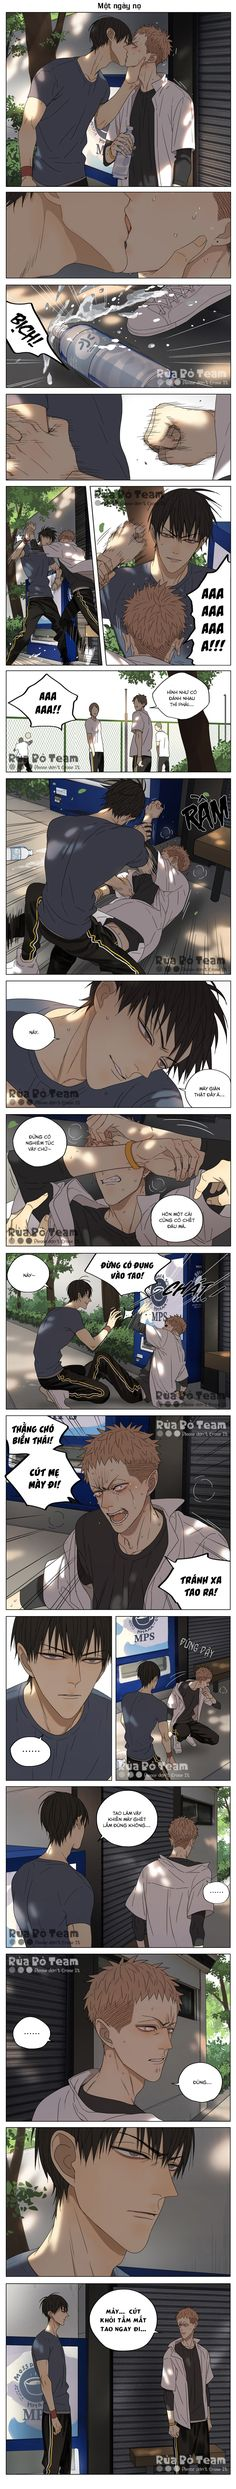 19 Days - Chapitre 173 à I'm sure this is the first french kiss of Mo Film Anime, Manga Anime, Manhwa, 19 Days Characters, Mosspaca Advertising Department, 19 Days Manga Español, Tan Jiu, Kurotsuki, Fanarts Anime